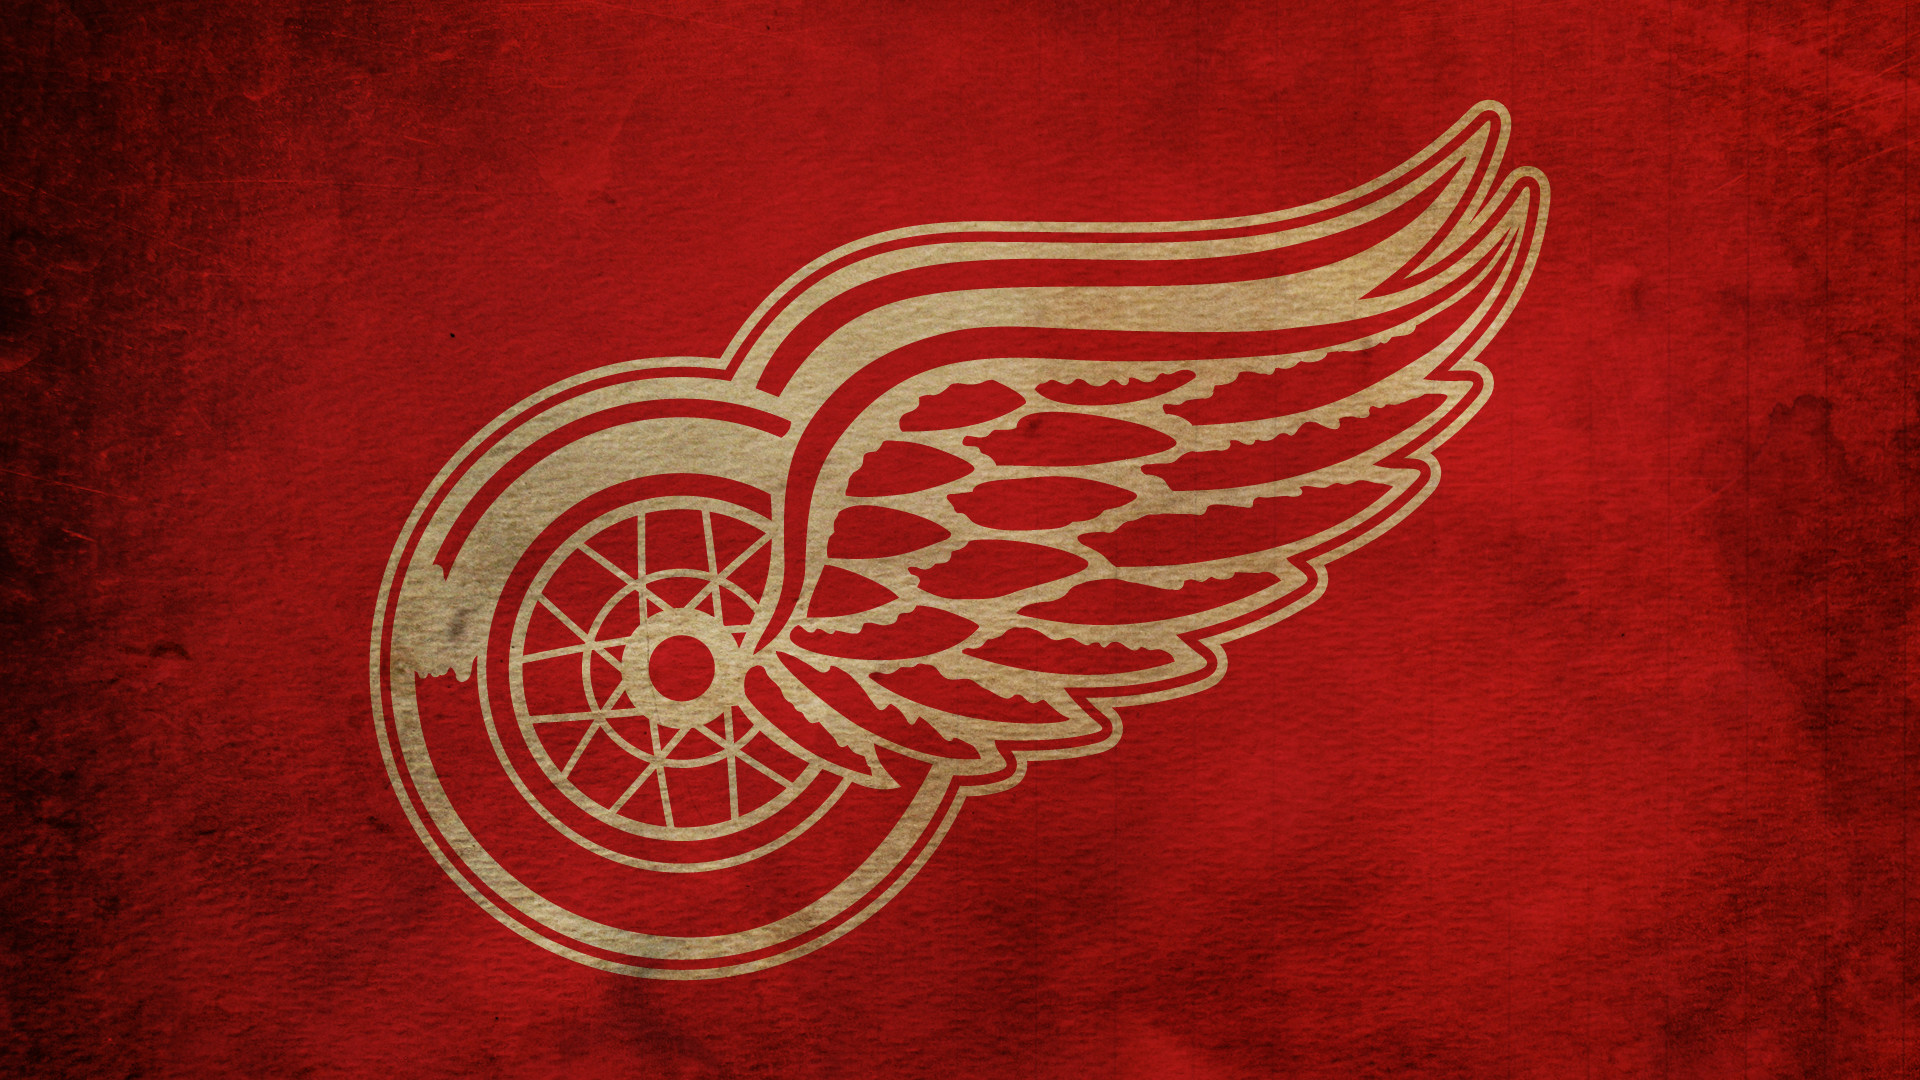 Red wing wallpaper 1920x1200 detroit red wings wallpaper detroit red wings wallpapers voltagebd Gallery